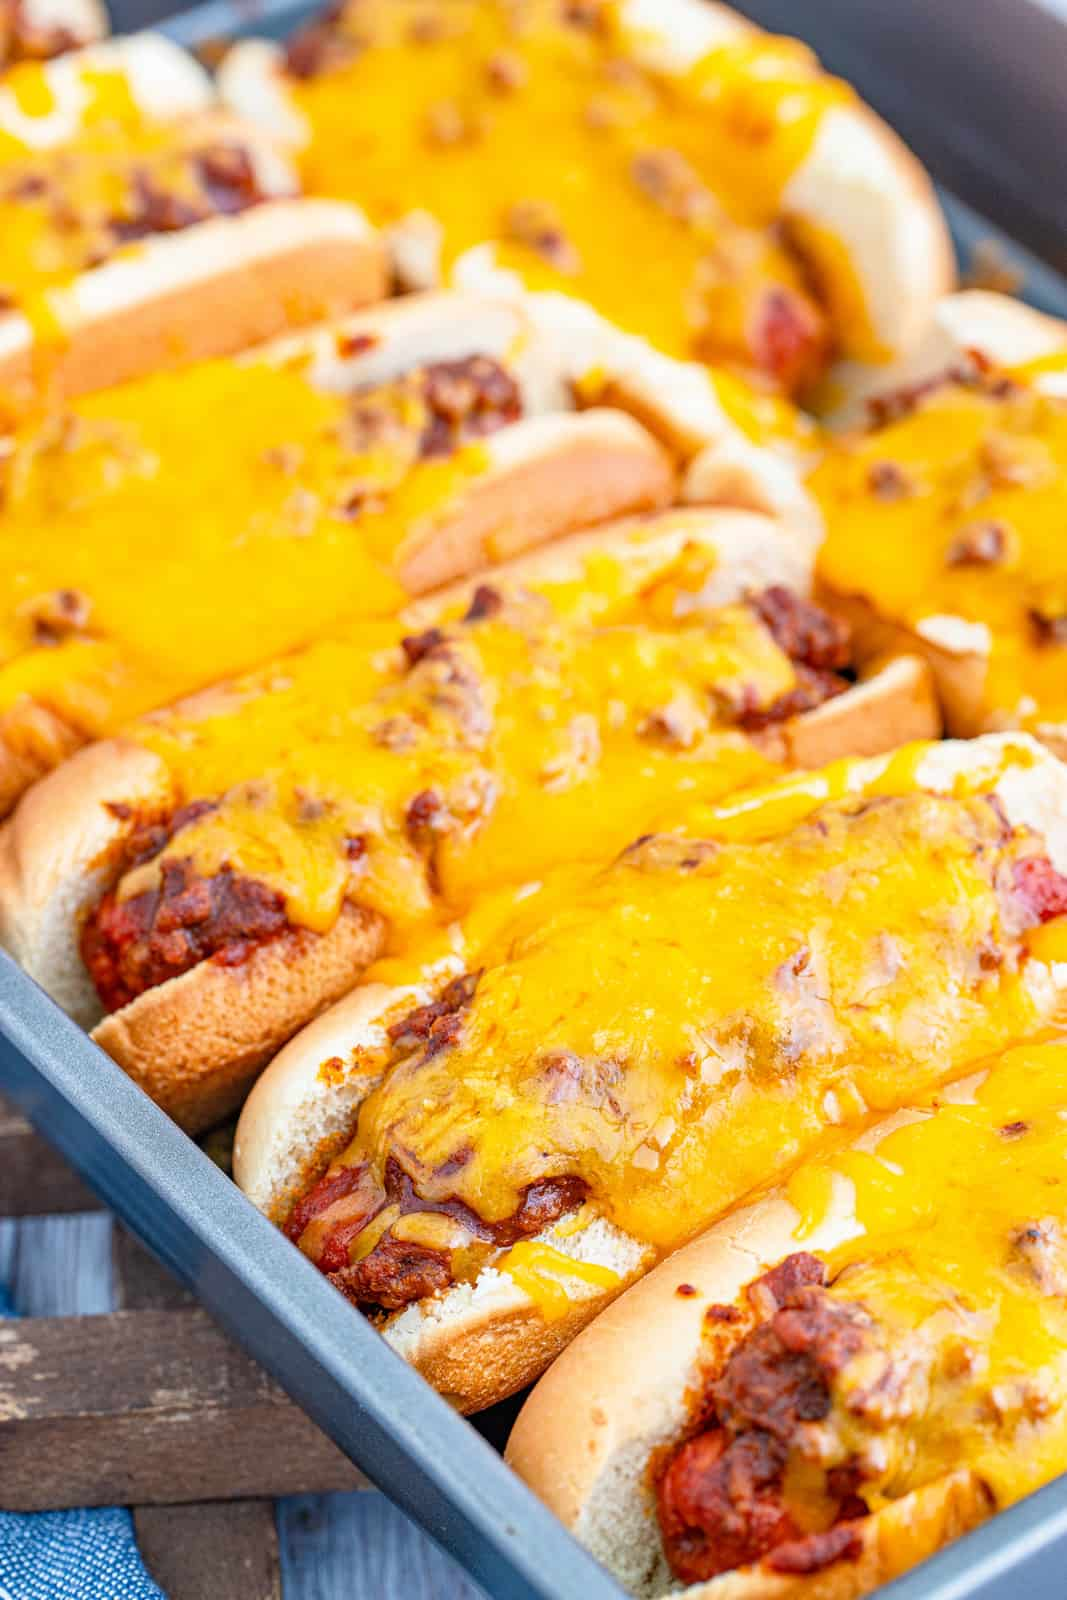 Finished hot dogs in pan